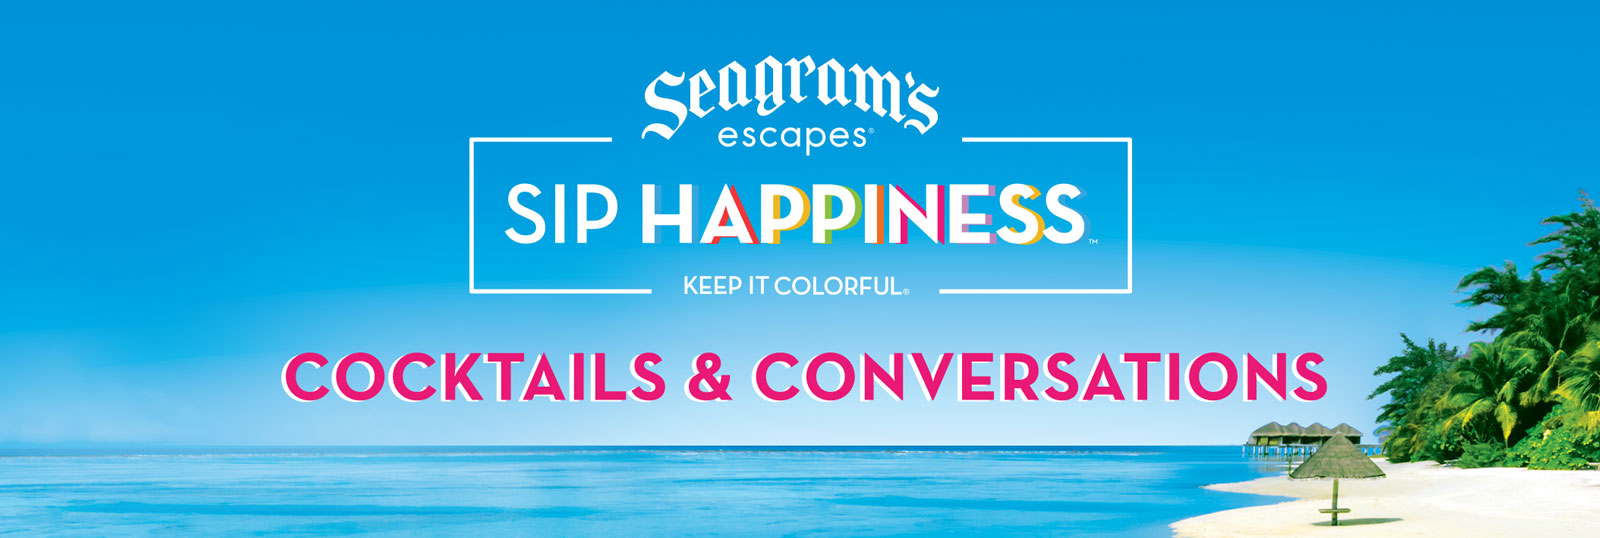 Image of Tropical Beach and Ocean. Text over image reads: Seagrams Escapes - Sip Happiness - Keep it colorful - Cocktails & Conversations.